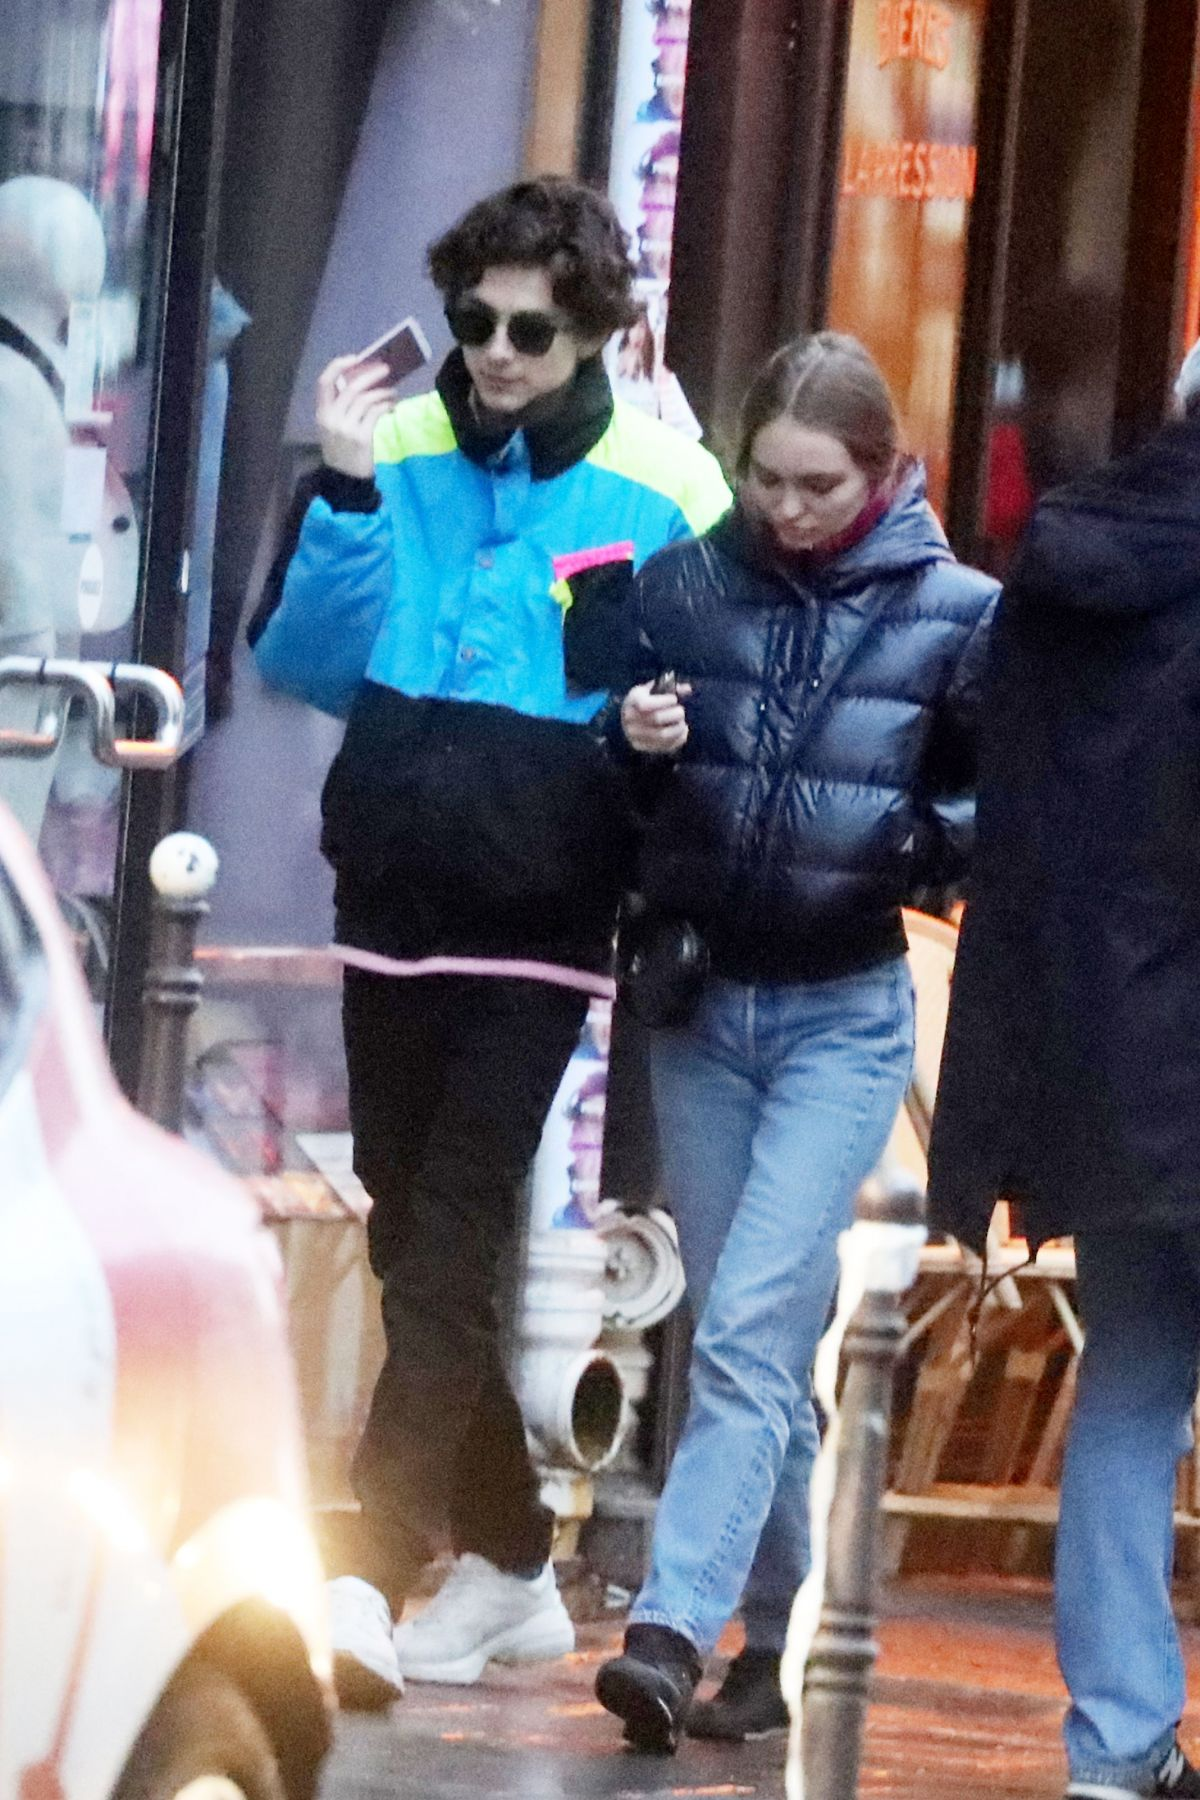 Lily Rose Depp And Timothee Chalamet Out In Paris 12 22 2018 Hawtcelebs